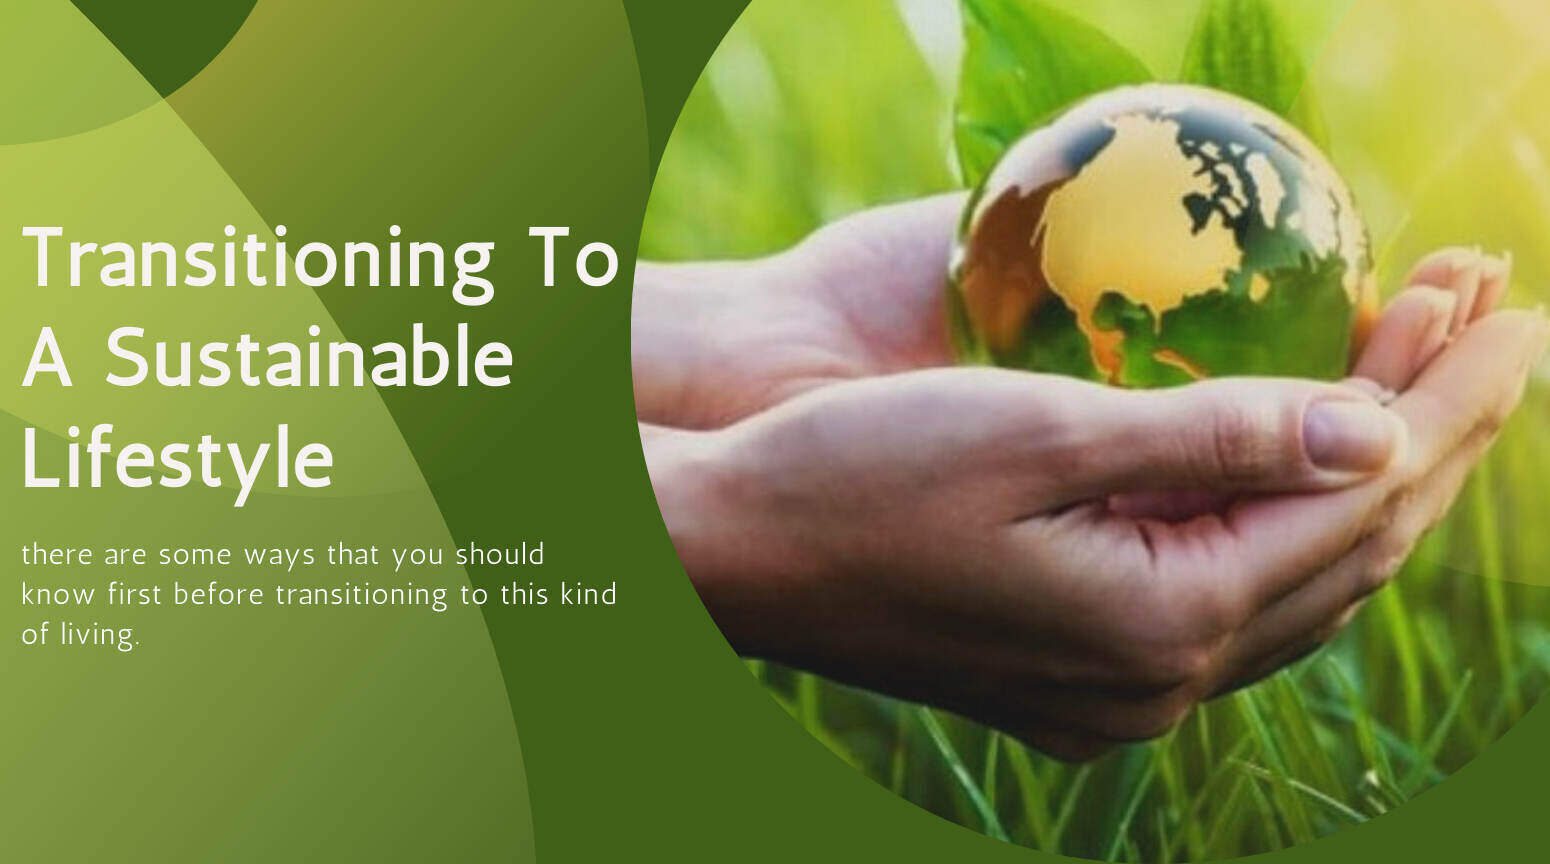 Transitioning To A Sustainable Lifestyle